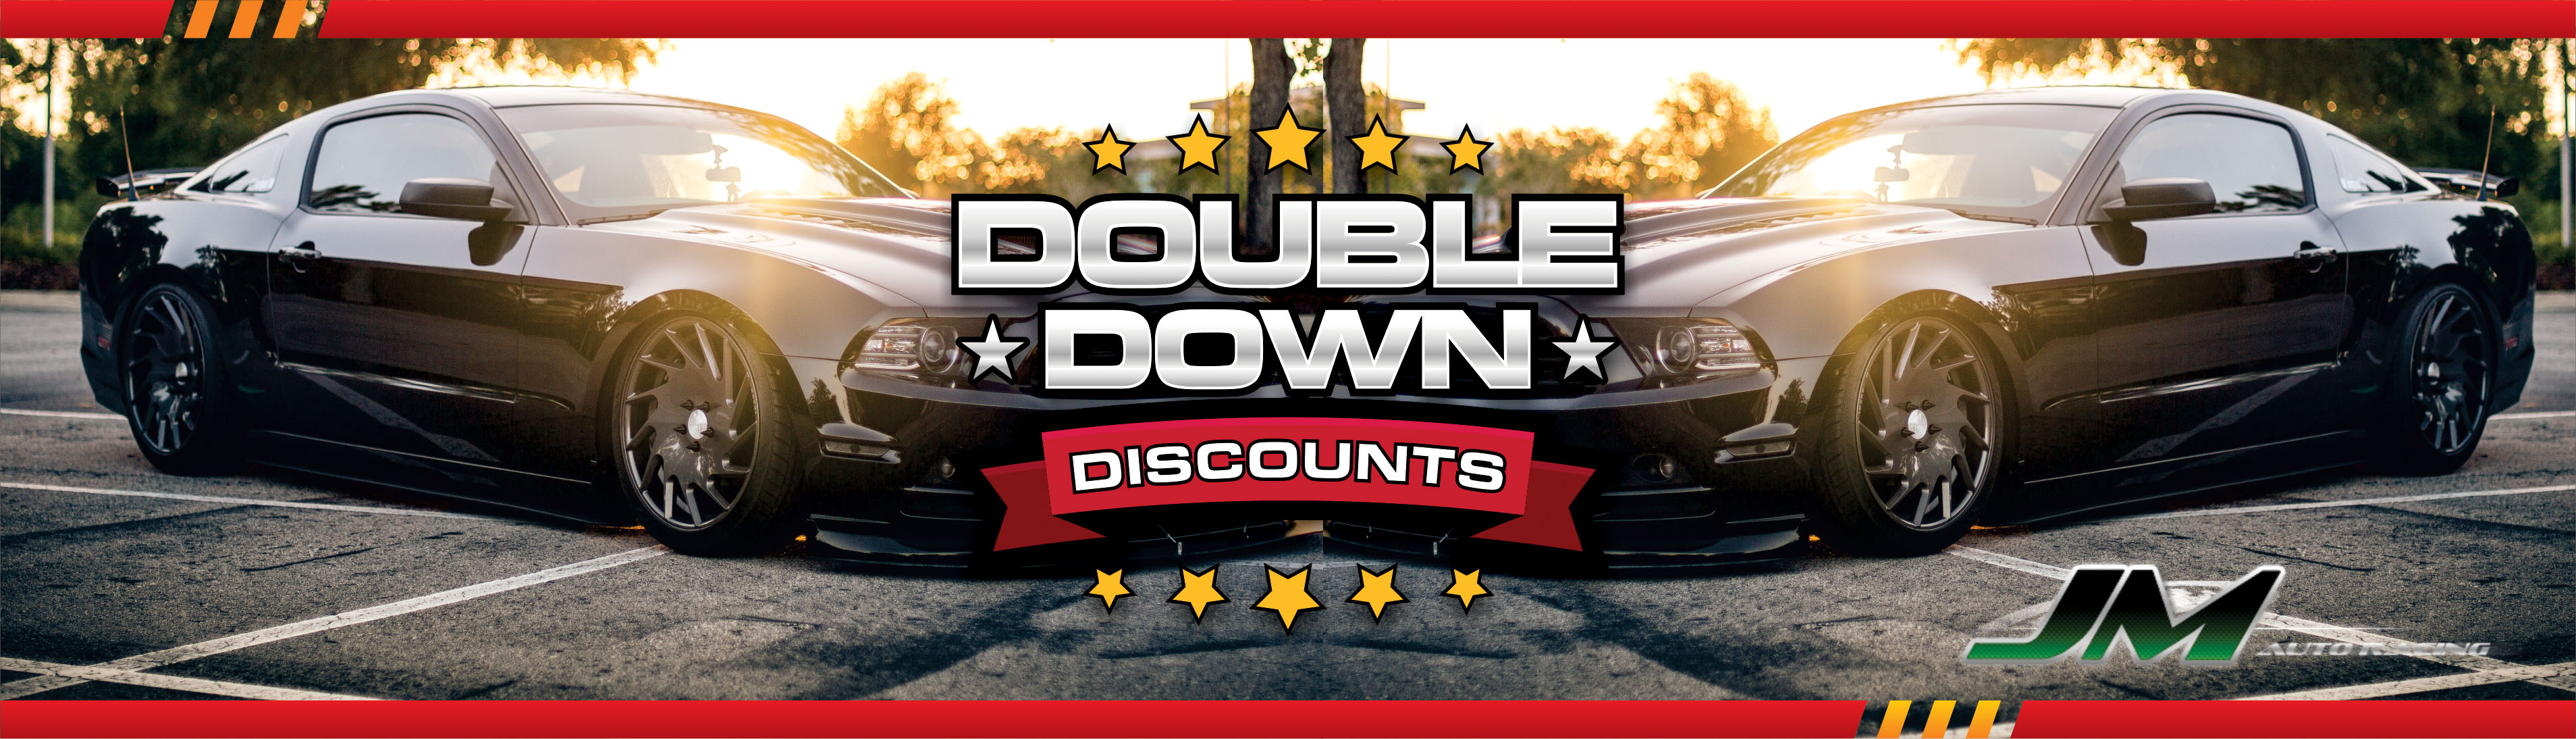 Double Down Discounts